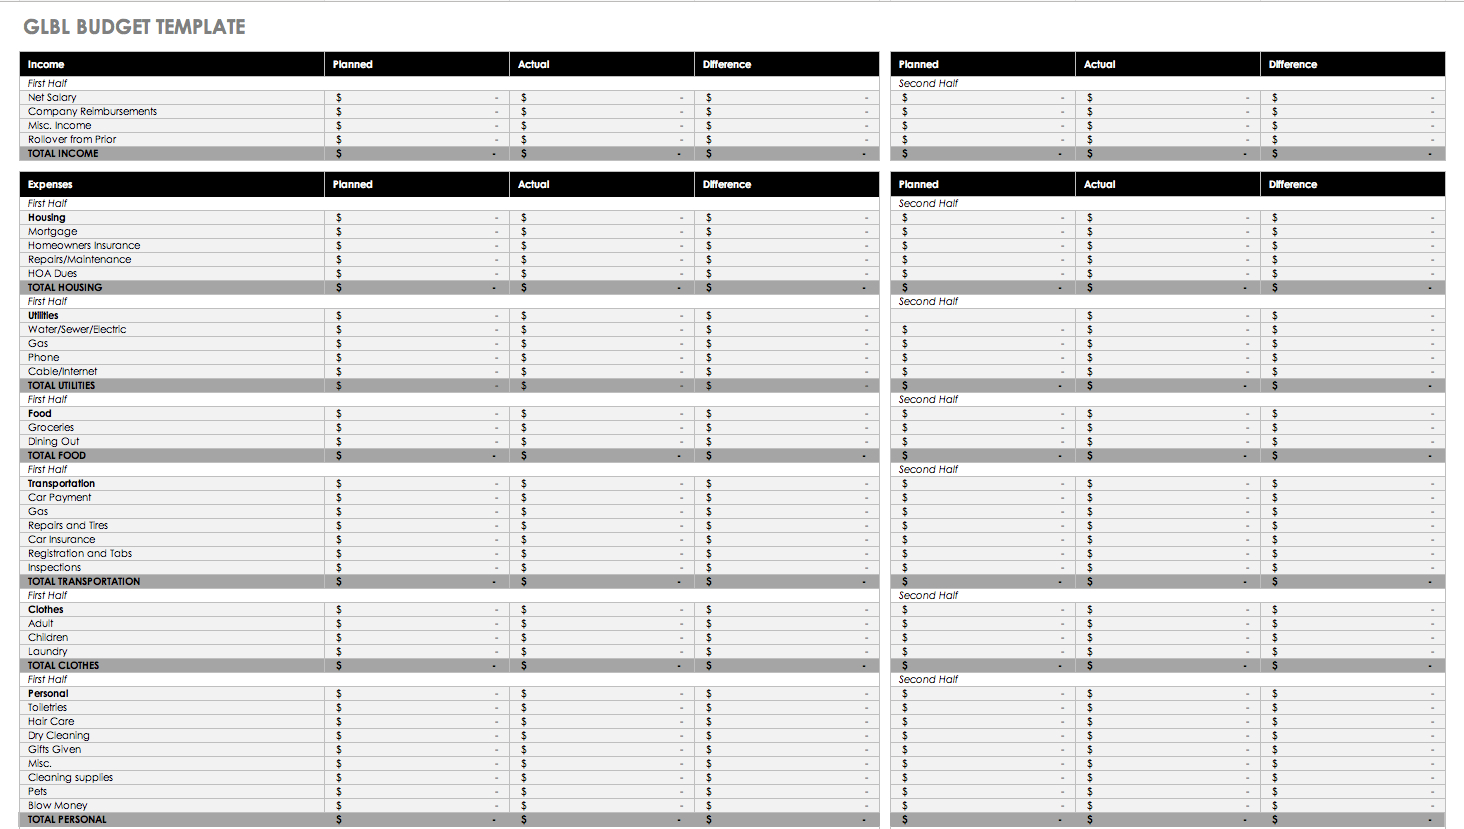 Apartment Expenses Spreadsheet Inside Free Monthly Budget Templates  Smartsheet Apartment Expenses Spreadsheet Printable Spreadshee Printable Spreadshee apartment expenses spreadsheet